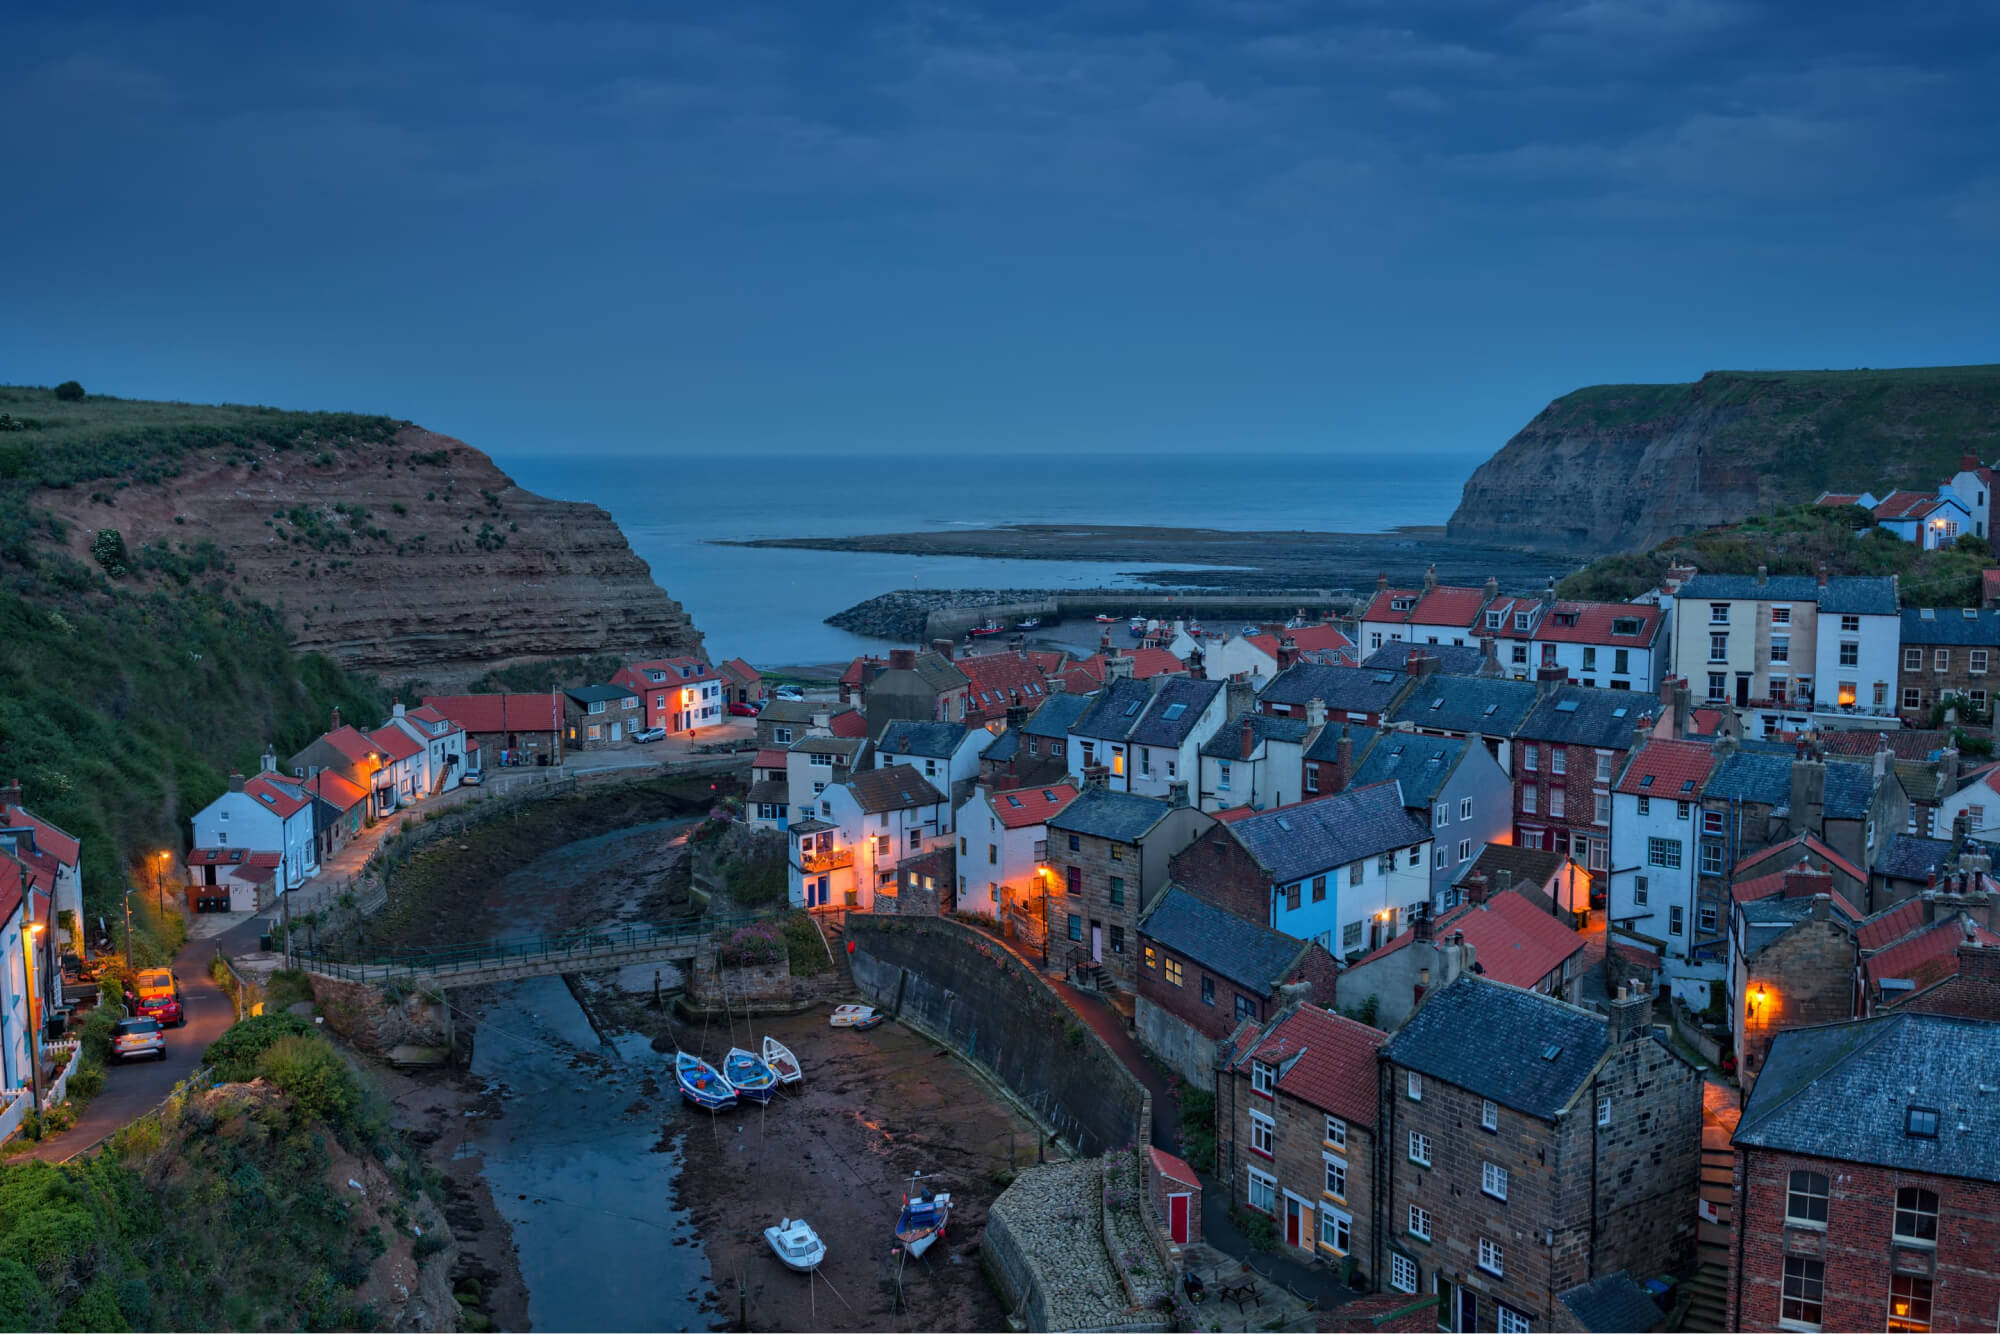 Staithes, North-East England